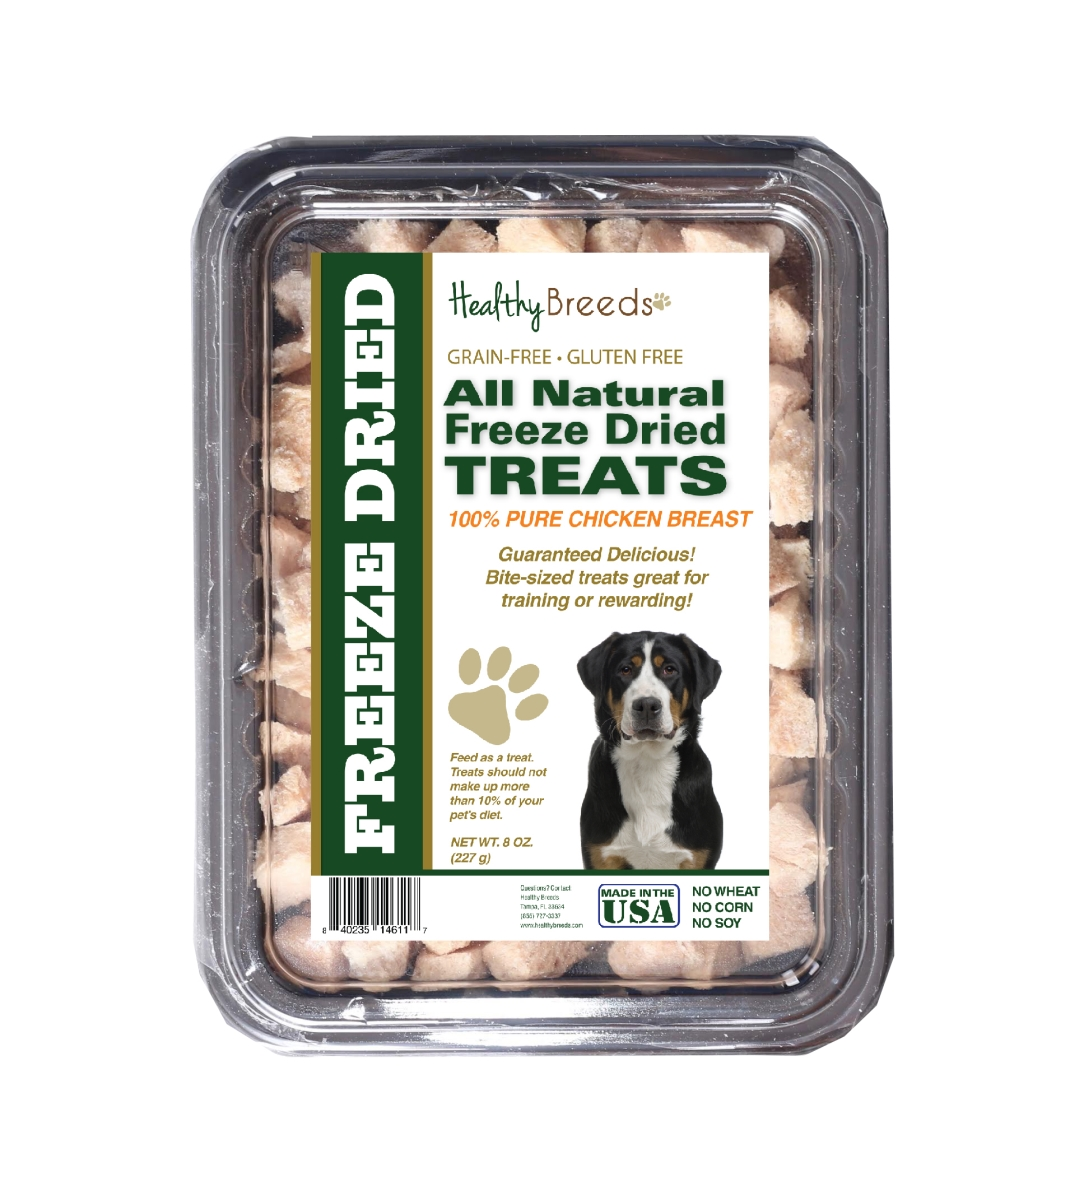 Healthy Breeds 840235146117 8 oz Greater Swiss Mountain Dog All Natural Freeze Dried Treats Chicken Breast